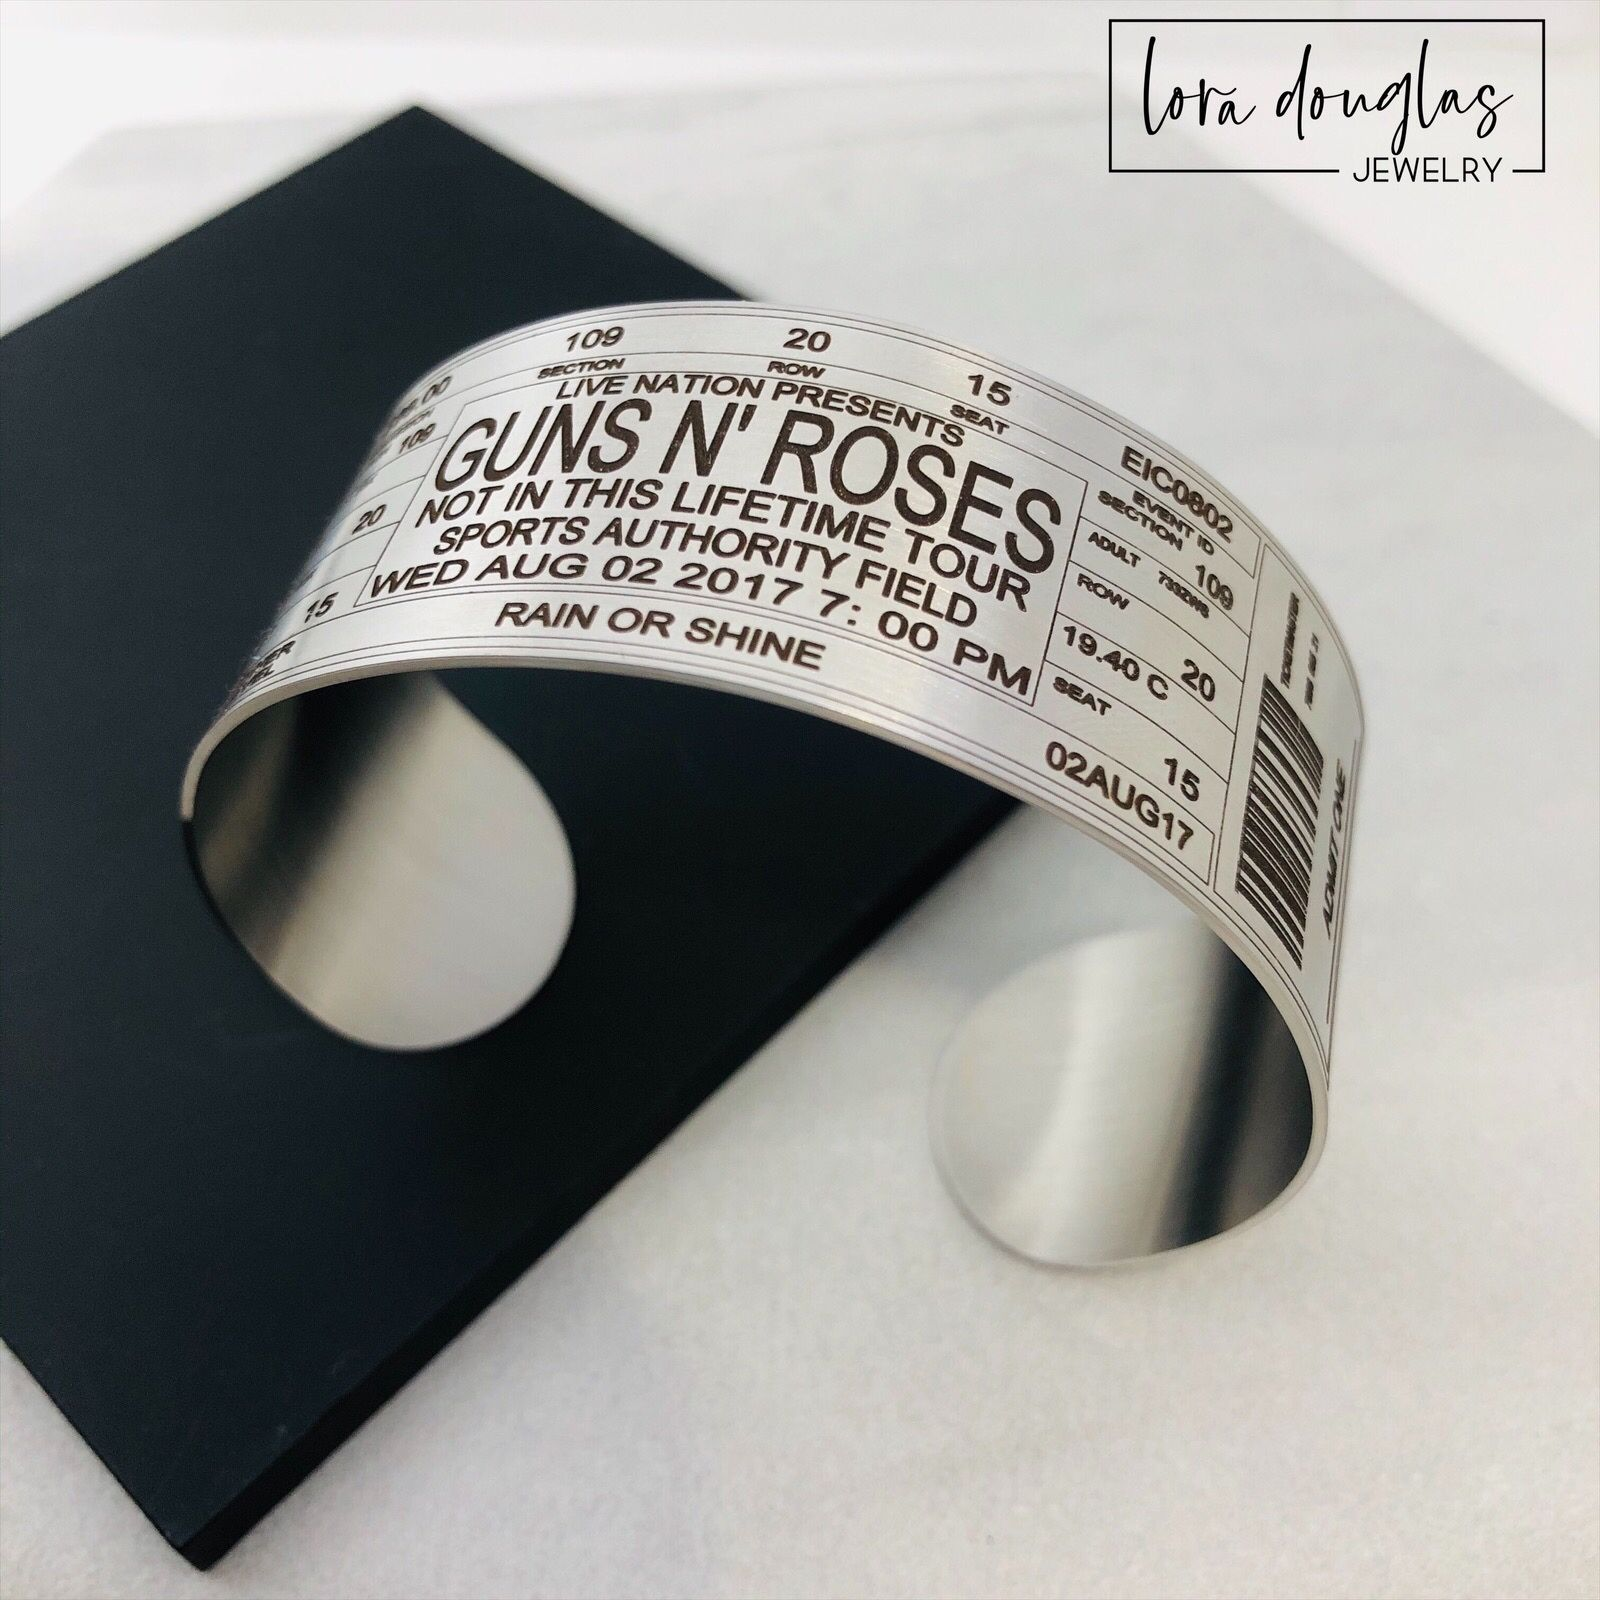 Guns N' Roses • Not In This Lifetime Tour • Sports Authority Field⁠ • We can permanently laser engrave any ticket on a #bracelet #bookmark or #keychain • Link in Bio⁠ .⁠ .⁠ #concert #livemusic #music #imisshairbands #laserengraving #favoritesong #jewelryisfun #myloradouglasjewelry #rocknroll #engraving #axlrose #headbangersball #mtv #the80s #musicphotography #concertphotography #gunsnroses #gnr #slash #notinthislifetime #gnfnr #amplified #metallica #aerosmith #defleppard #vanhalen